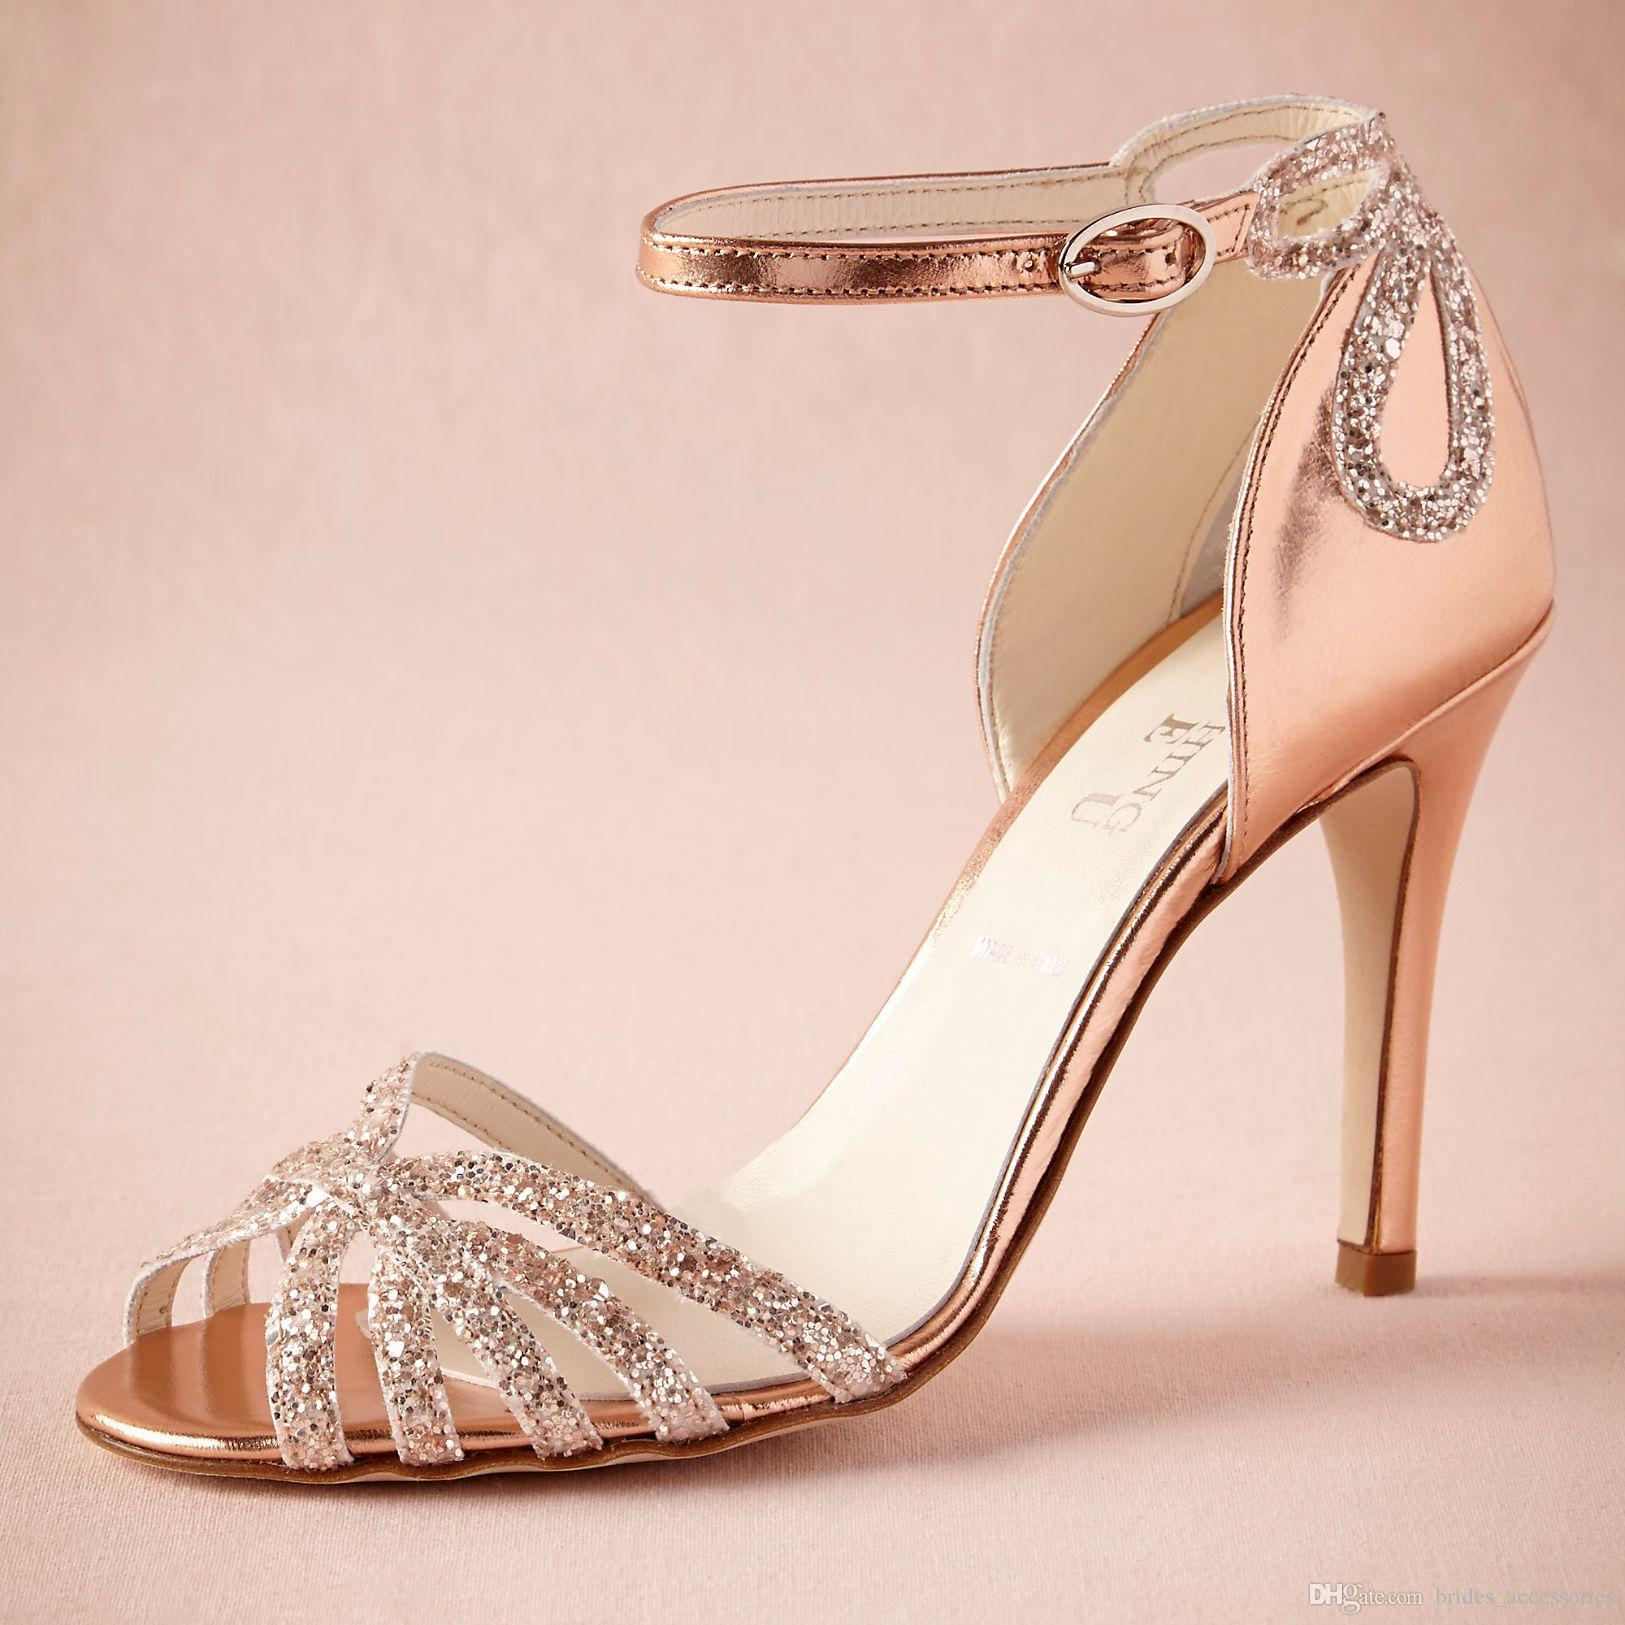 Where To Buy Bridal Shoes In Adelaide